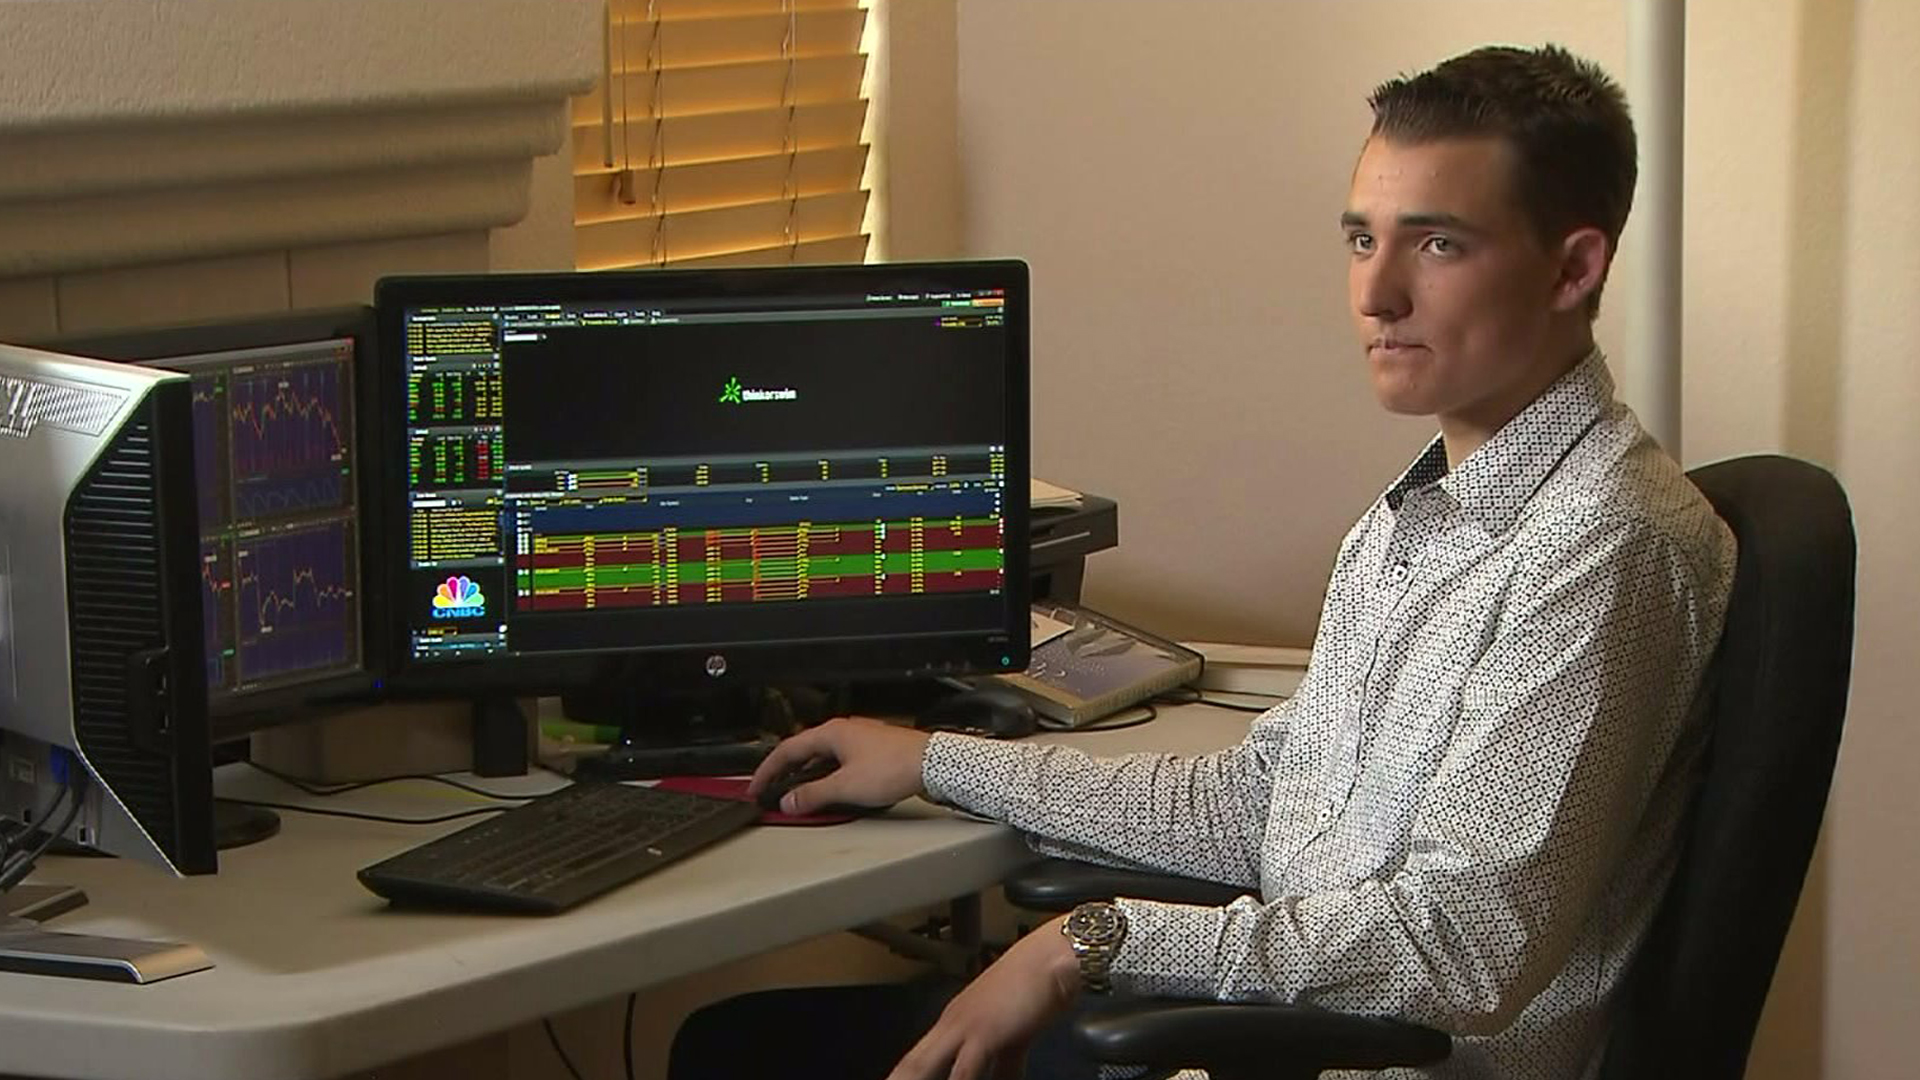 Jacob Wohl is interviewed by KTLA on March 16, 2015, when he was still a high school student in Corona. (Credit: KTLA)